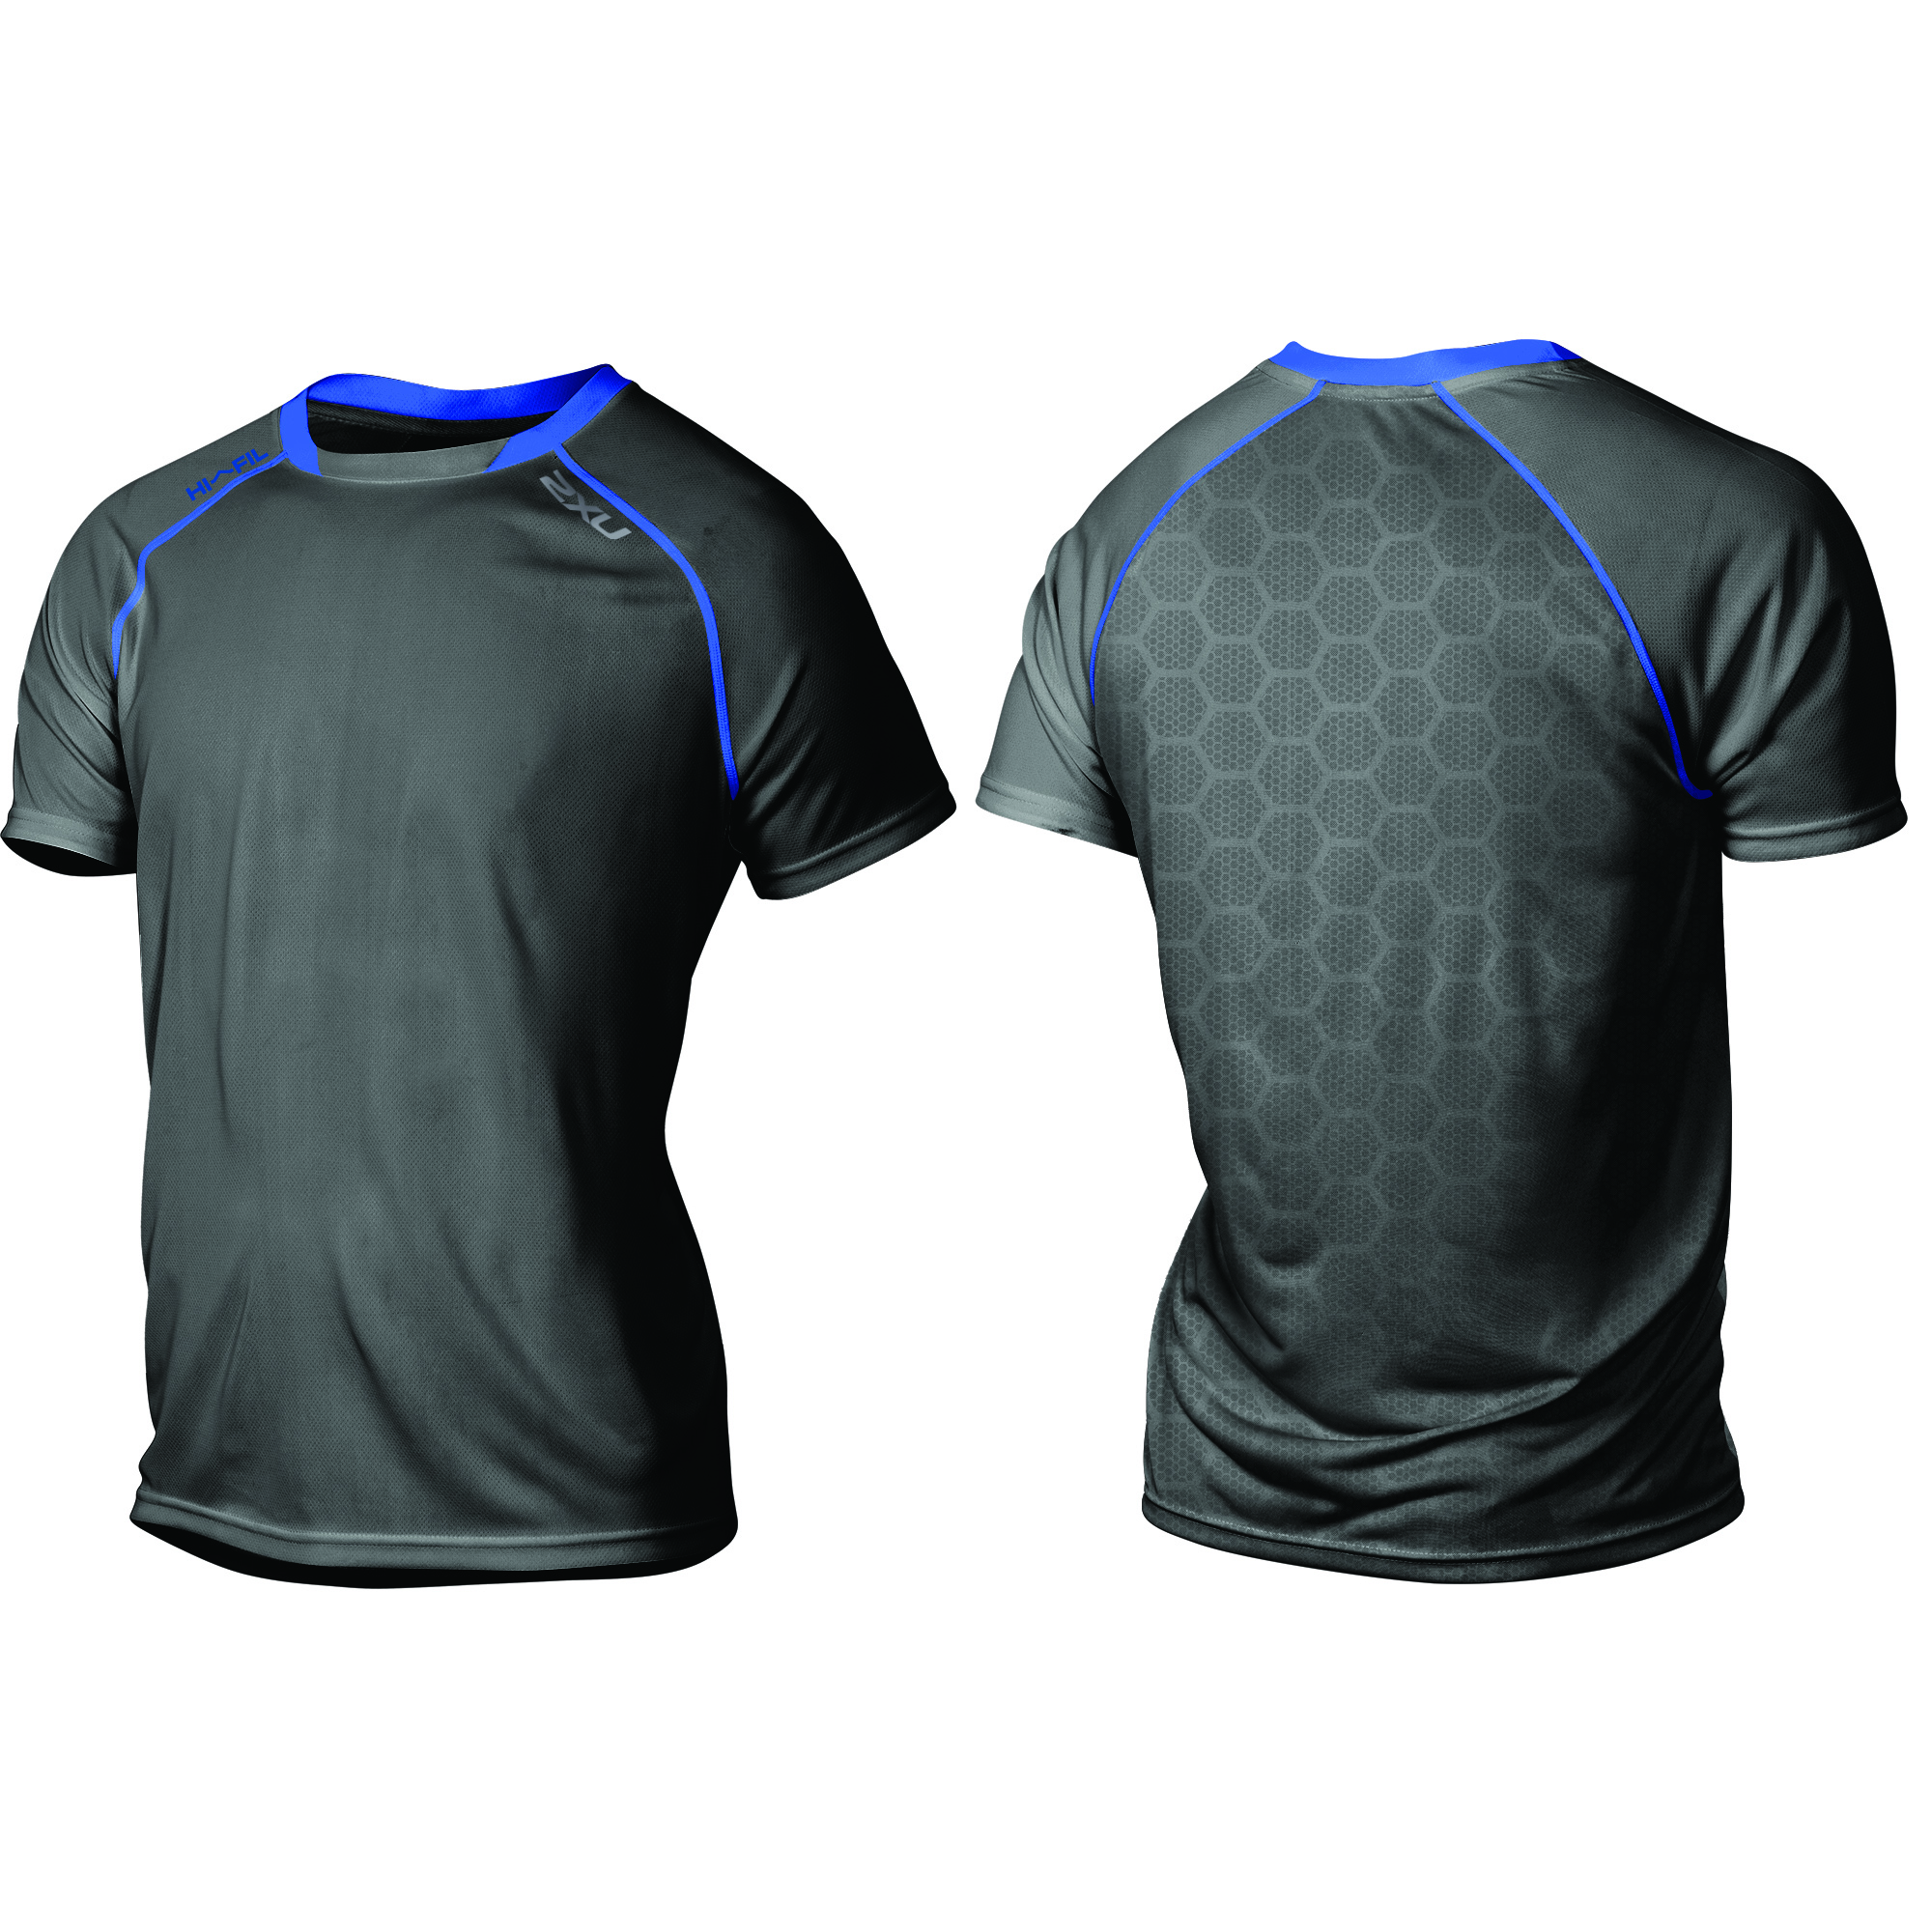 MAGLIA RUNNING 2XU TECH VENT S/S TOP MR3752A ink cobalt blue